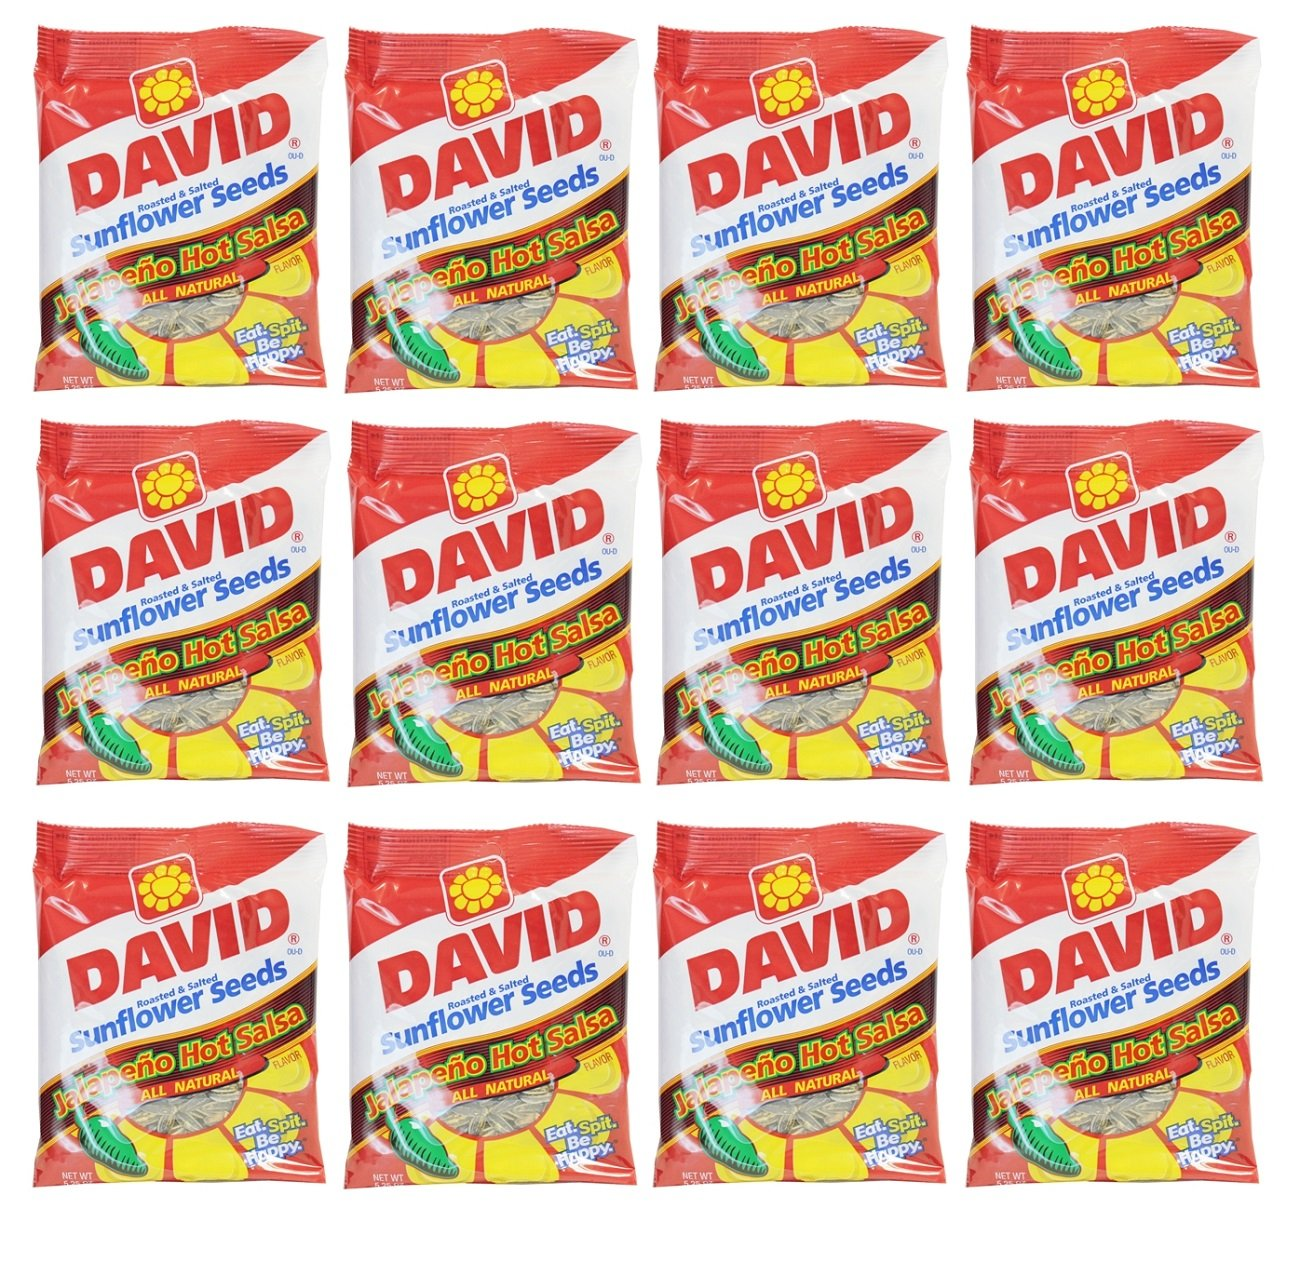 Delicious Treats David Sunflower Seeds Jalapeno Hot Salsa - 12 Bag of 5.25 Oz - Tj11 by DAVID Seeds